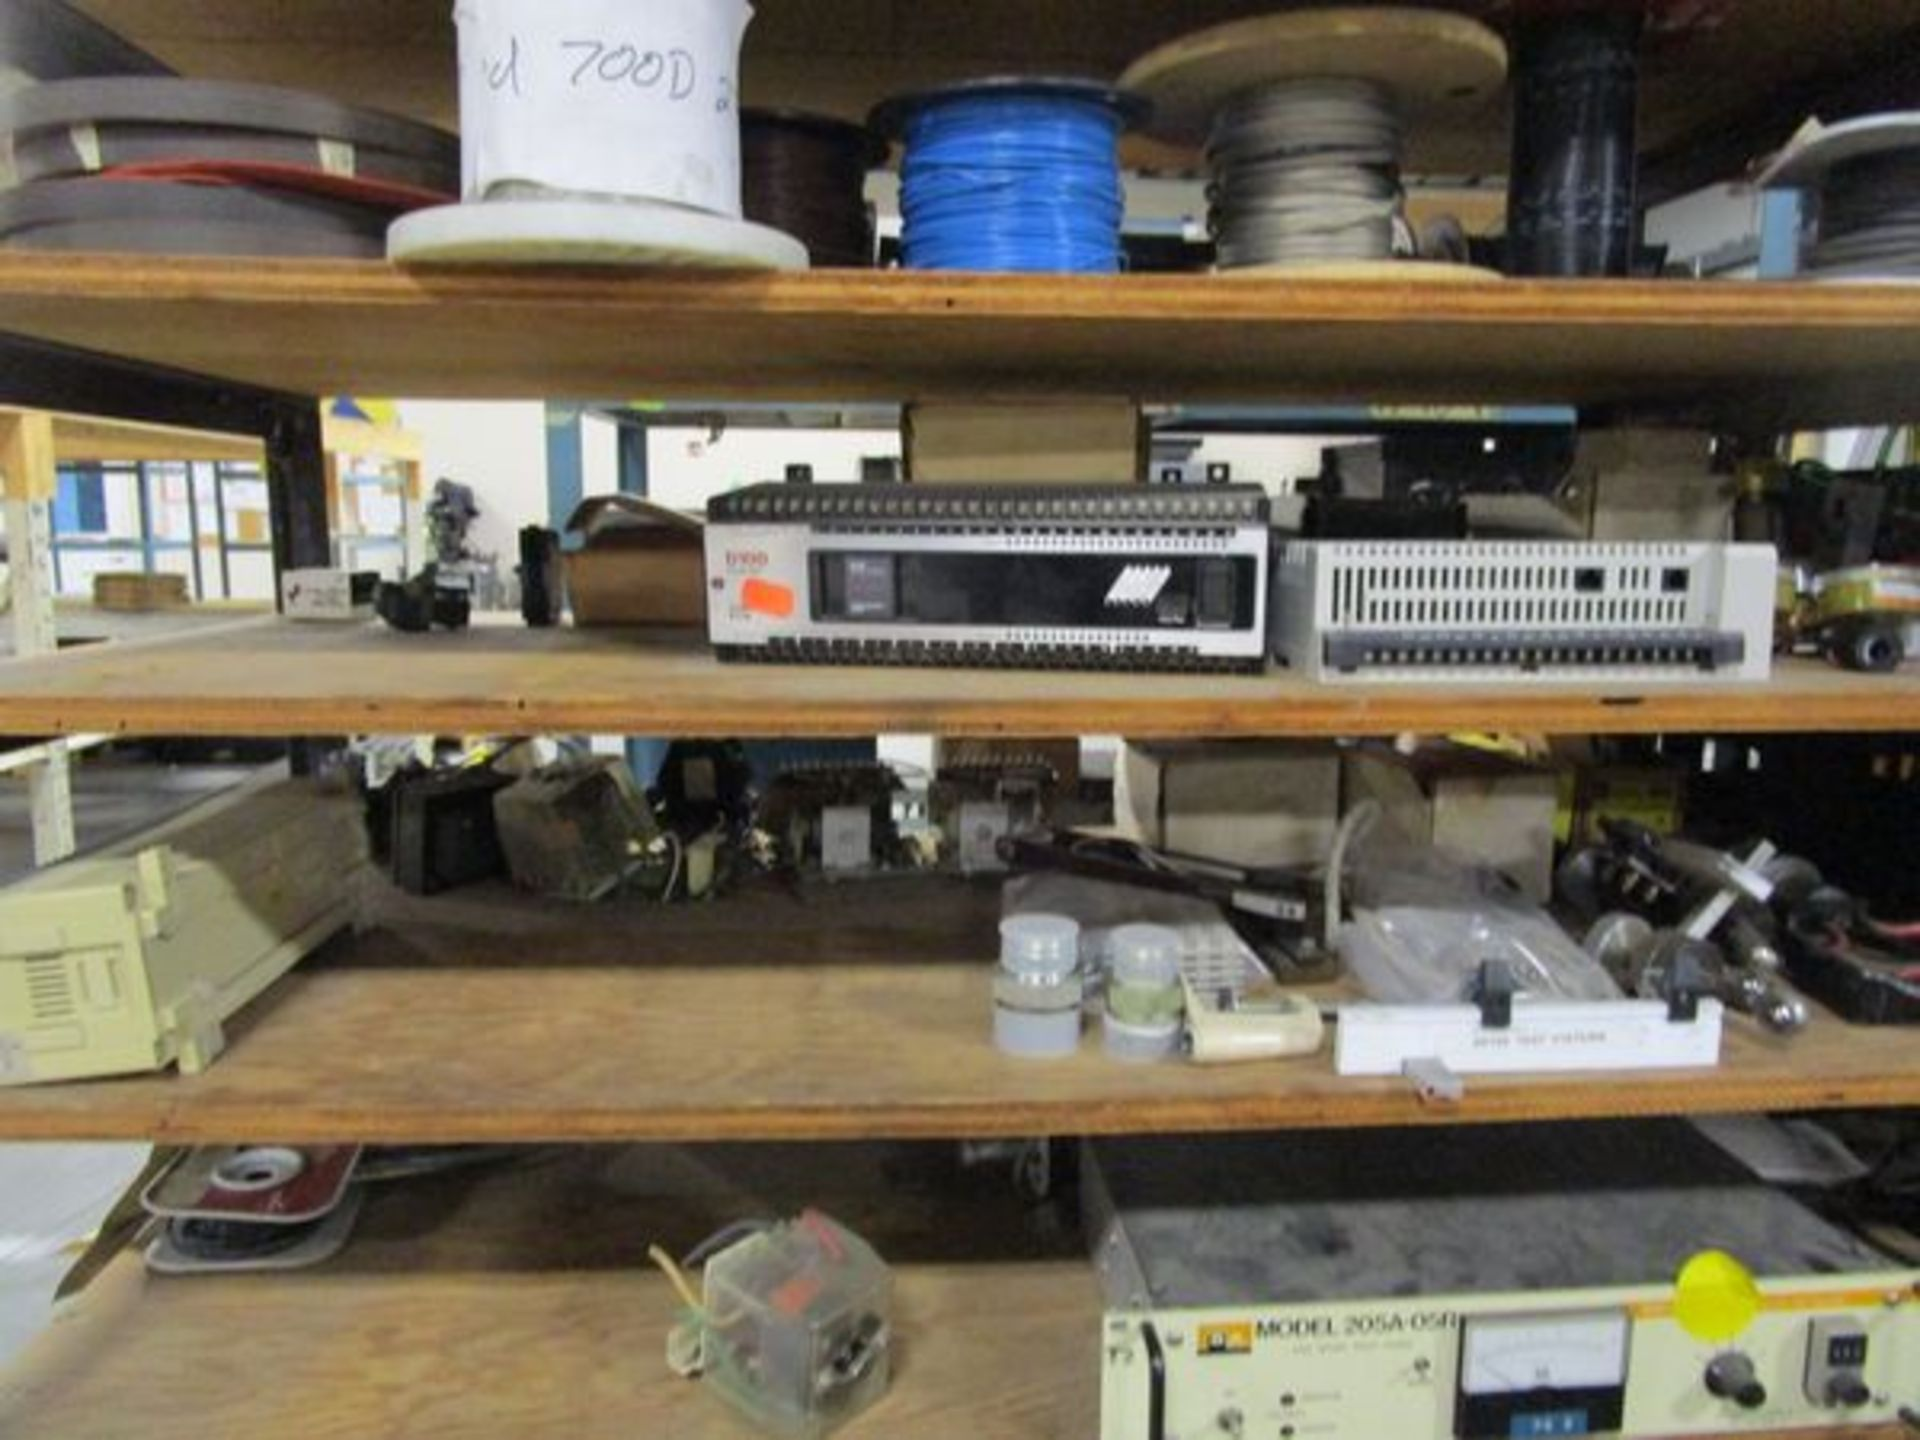 Lot Meters, Electrical Supplies, Wire, Components, Pins, Gages, Solderer, Etc. in 4 Sections - Image 2 of 5